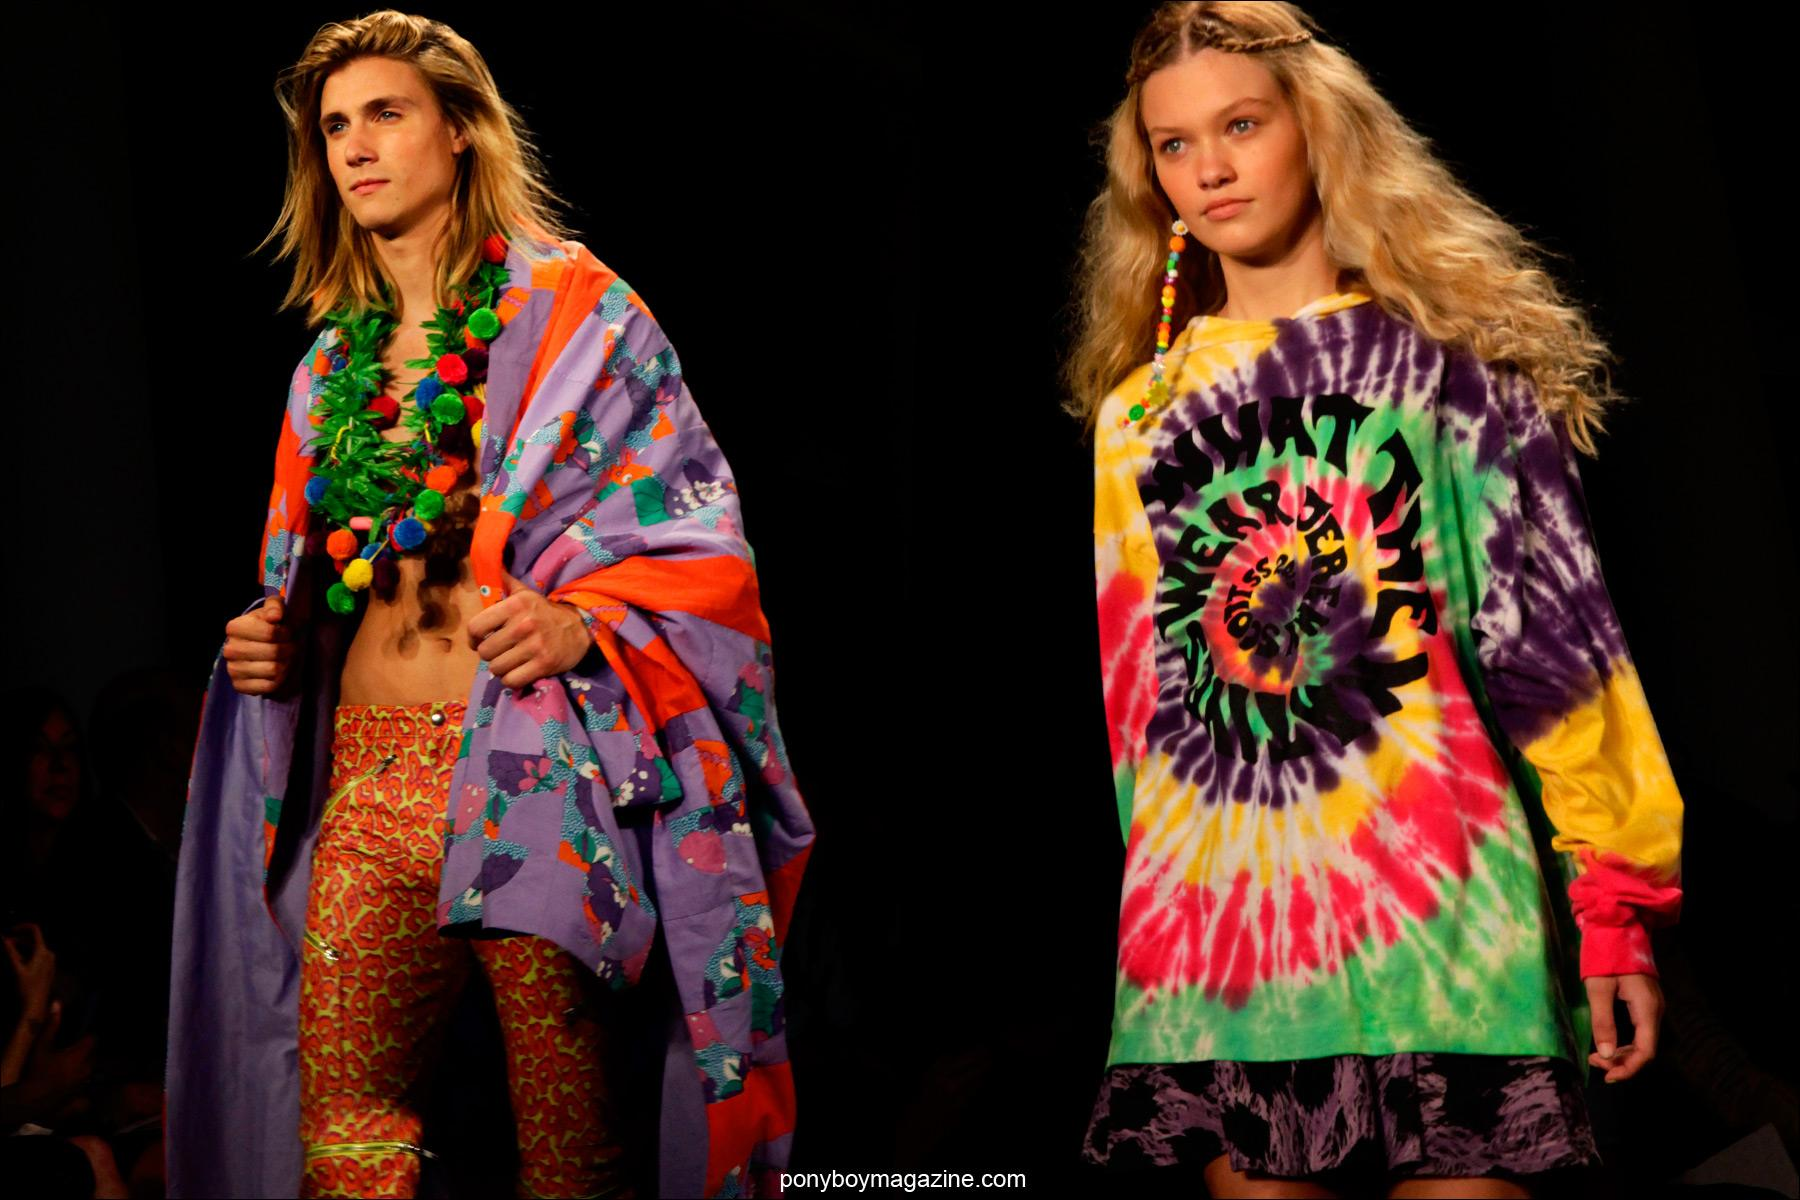 Colorful hippie clothing created by Jeremy Scott Spring/Summer 2015. Shown at Milk Studios in New York City. Photographed by Alexander Thompson for Ponyboy Magazine.